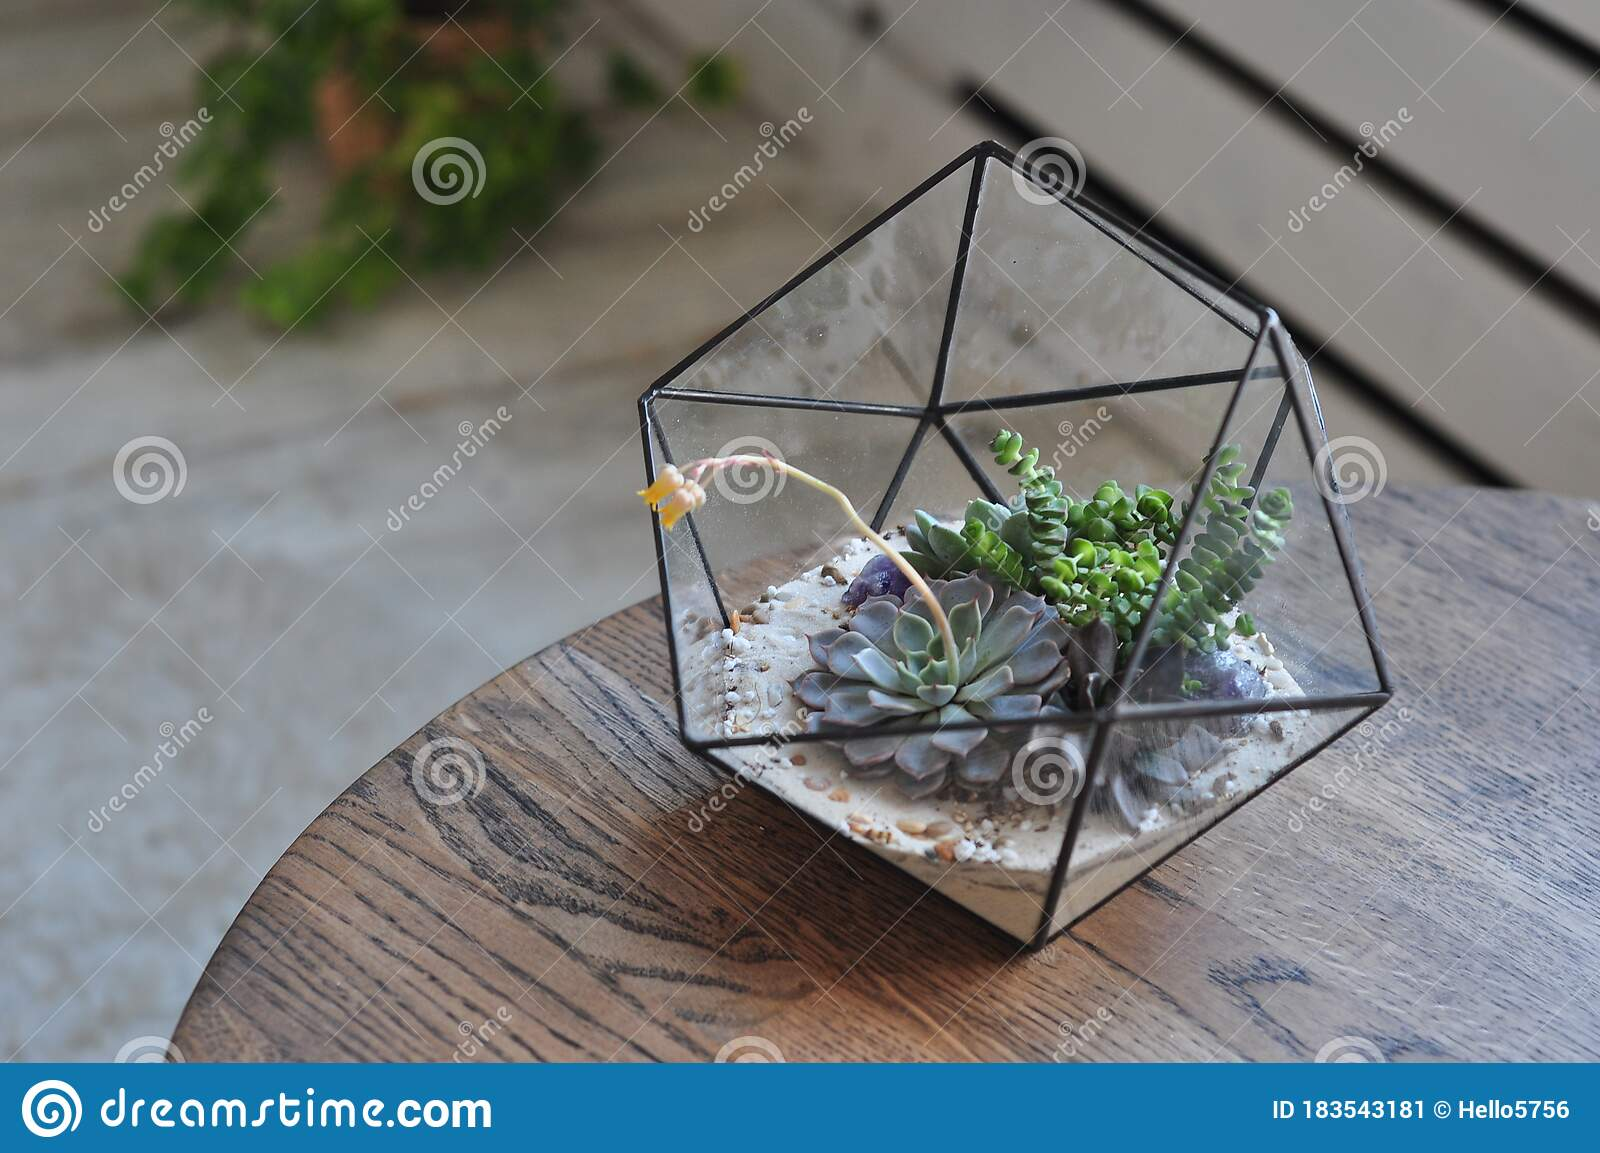 Succulent In Glass Terrarium On The Wooden Table Stock Image Image Of Botany Nature 183543181